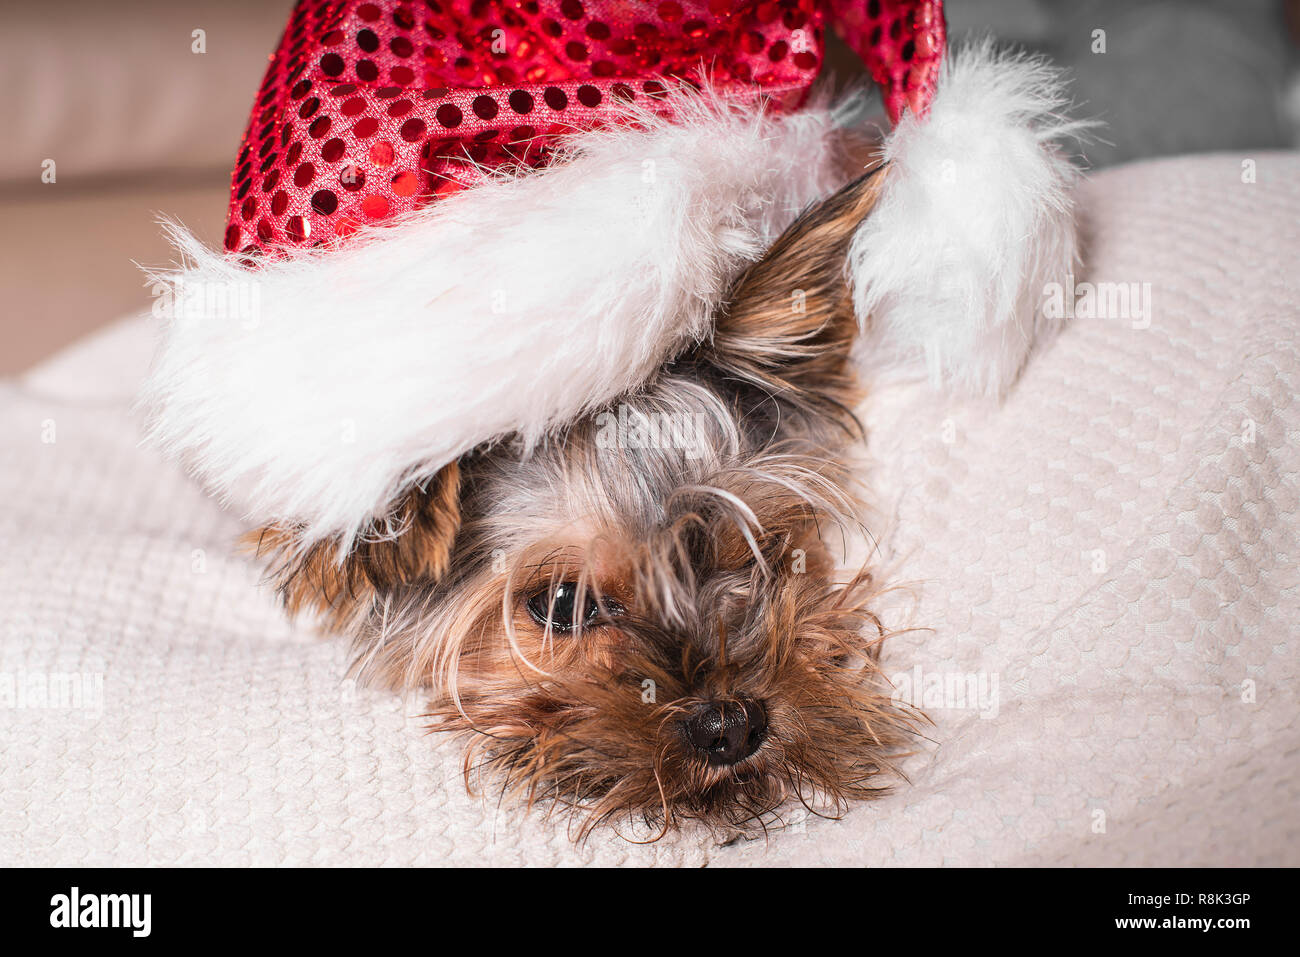 A small dog in a New Year's hat is lying on a white pillow. Funny dog in a New Year's. - Stock Image